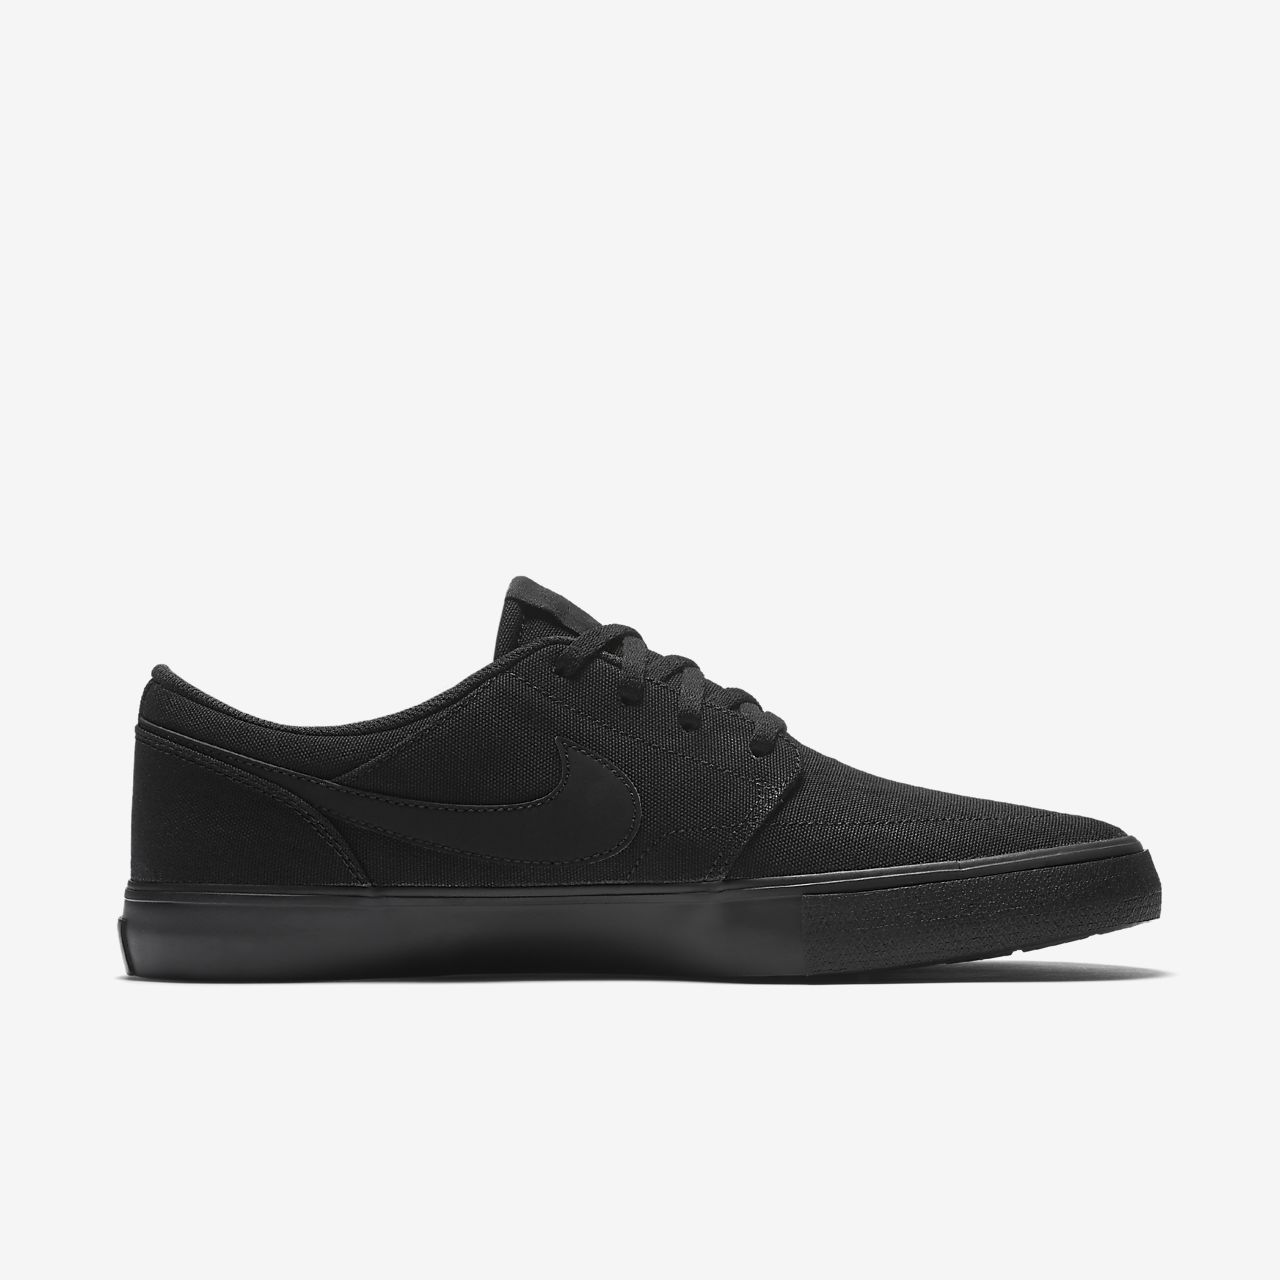 nike sb solarsoft portmore ii canvas men 39 s skateboarding shoe lu. Black Bedroom Furniture Sets. Home Design Ideas